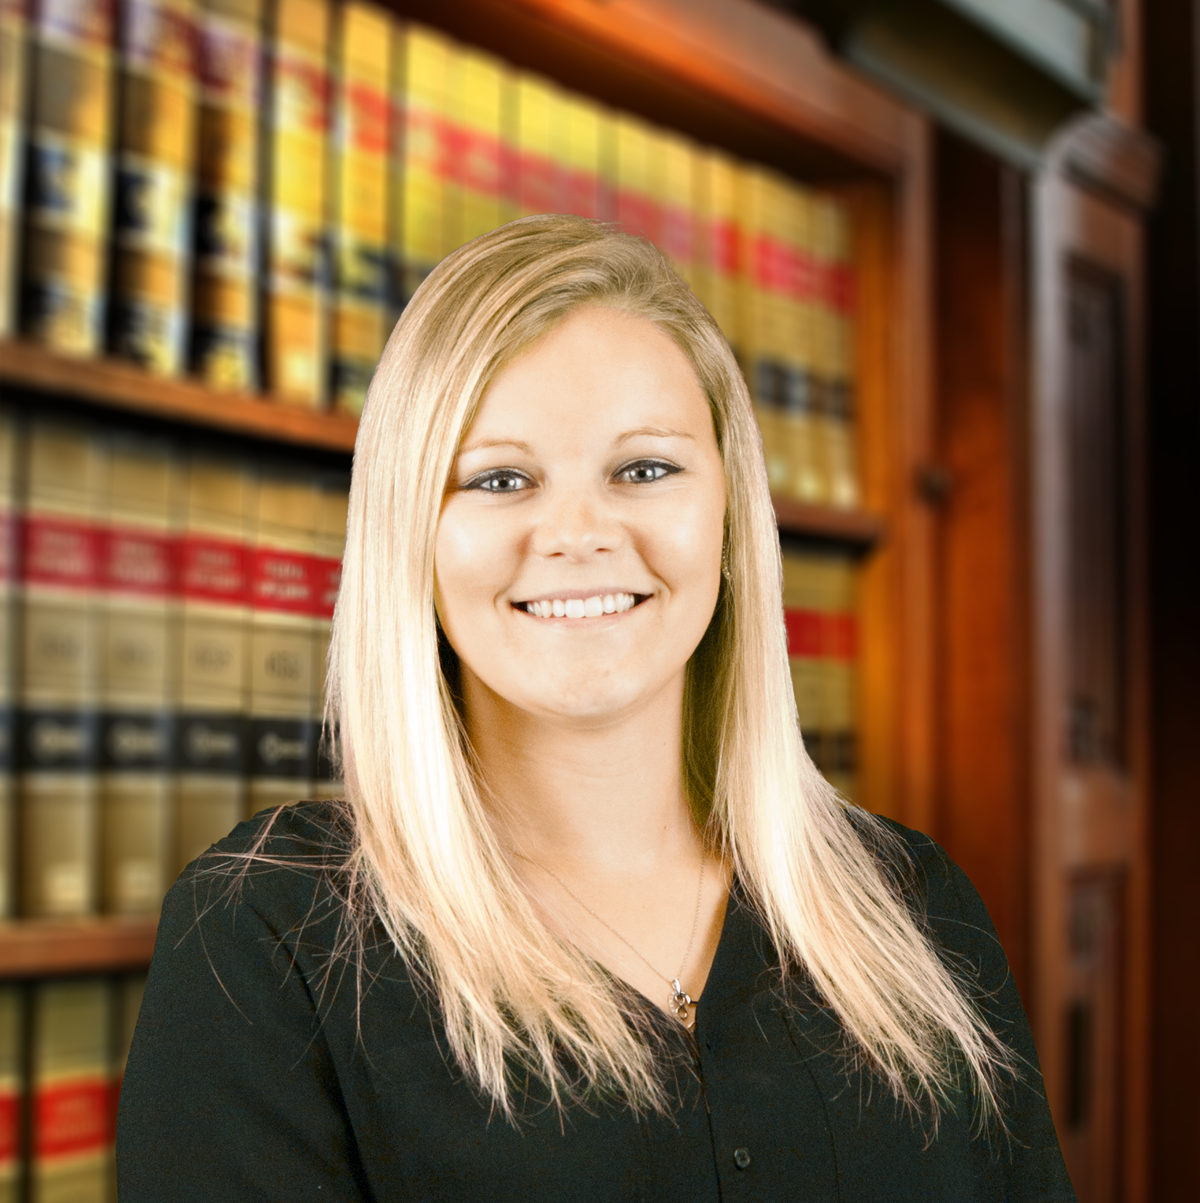 St Cloud Attorneys Staff at Jeddeloh Snyder PA - Kaitlin Schmitz